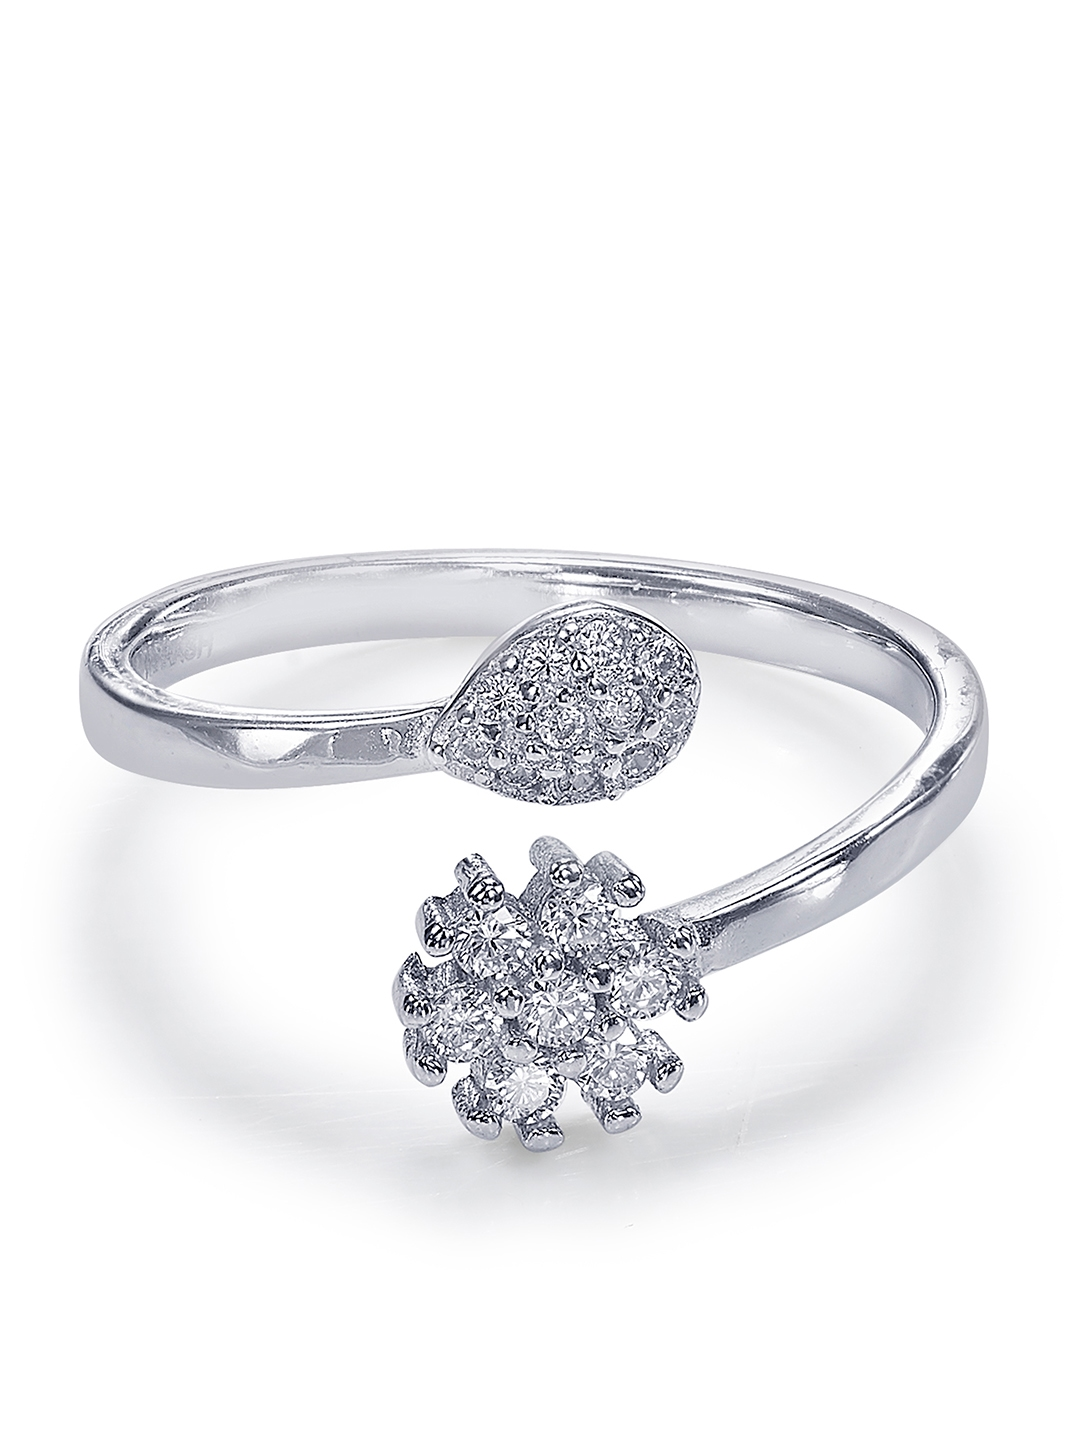 0183354afc6fd Buy Taraash Sterling Silver Toned & White Cubic Zirconia Stone ...